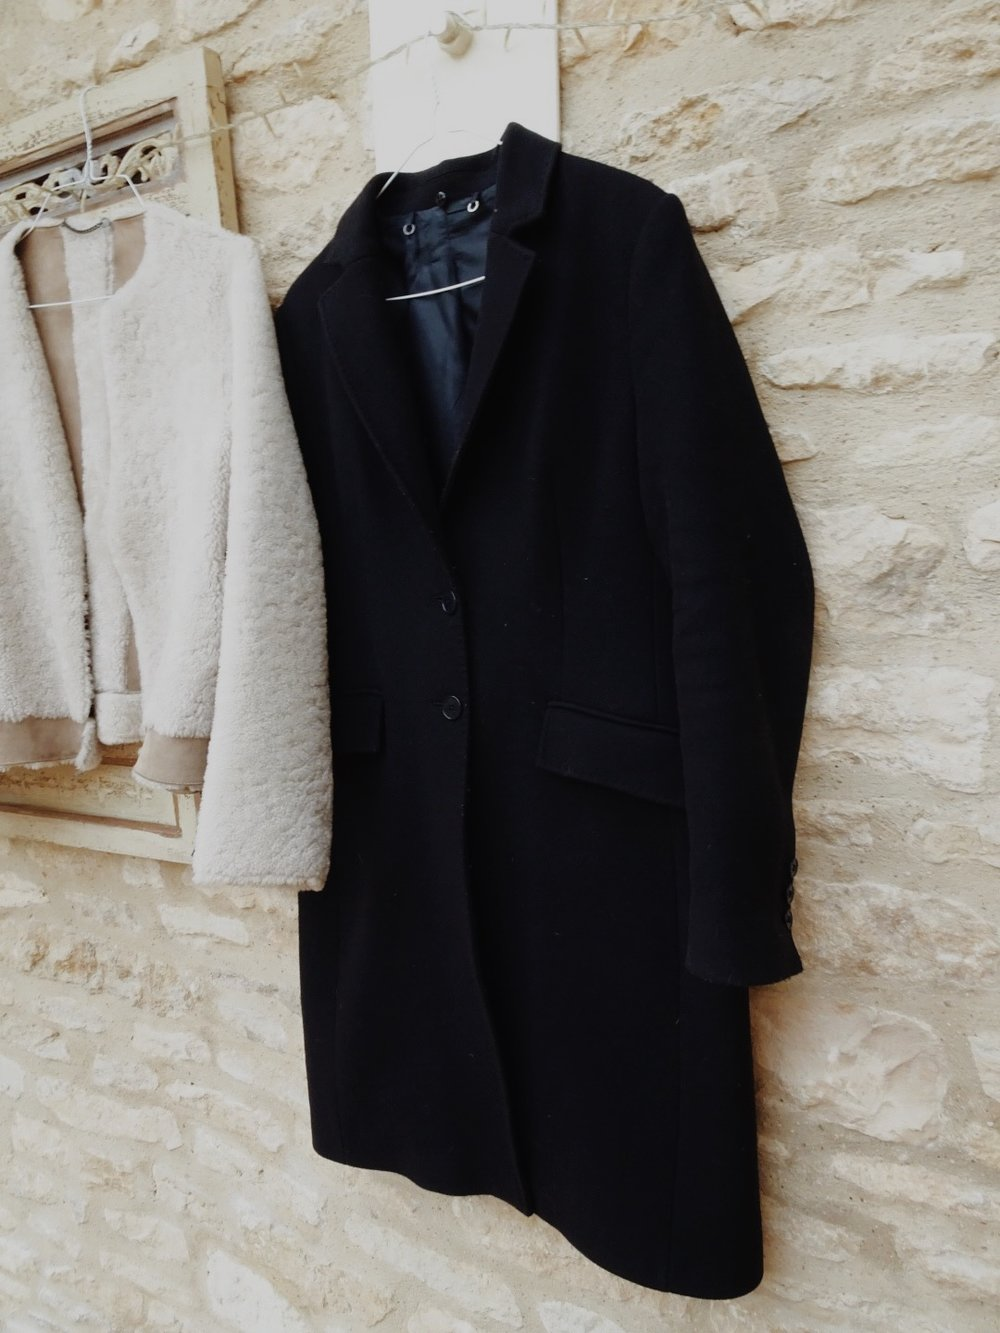 The Navy Winter Jigsaw Coat